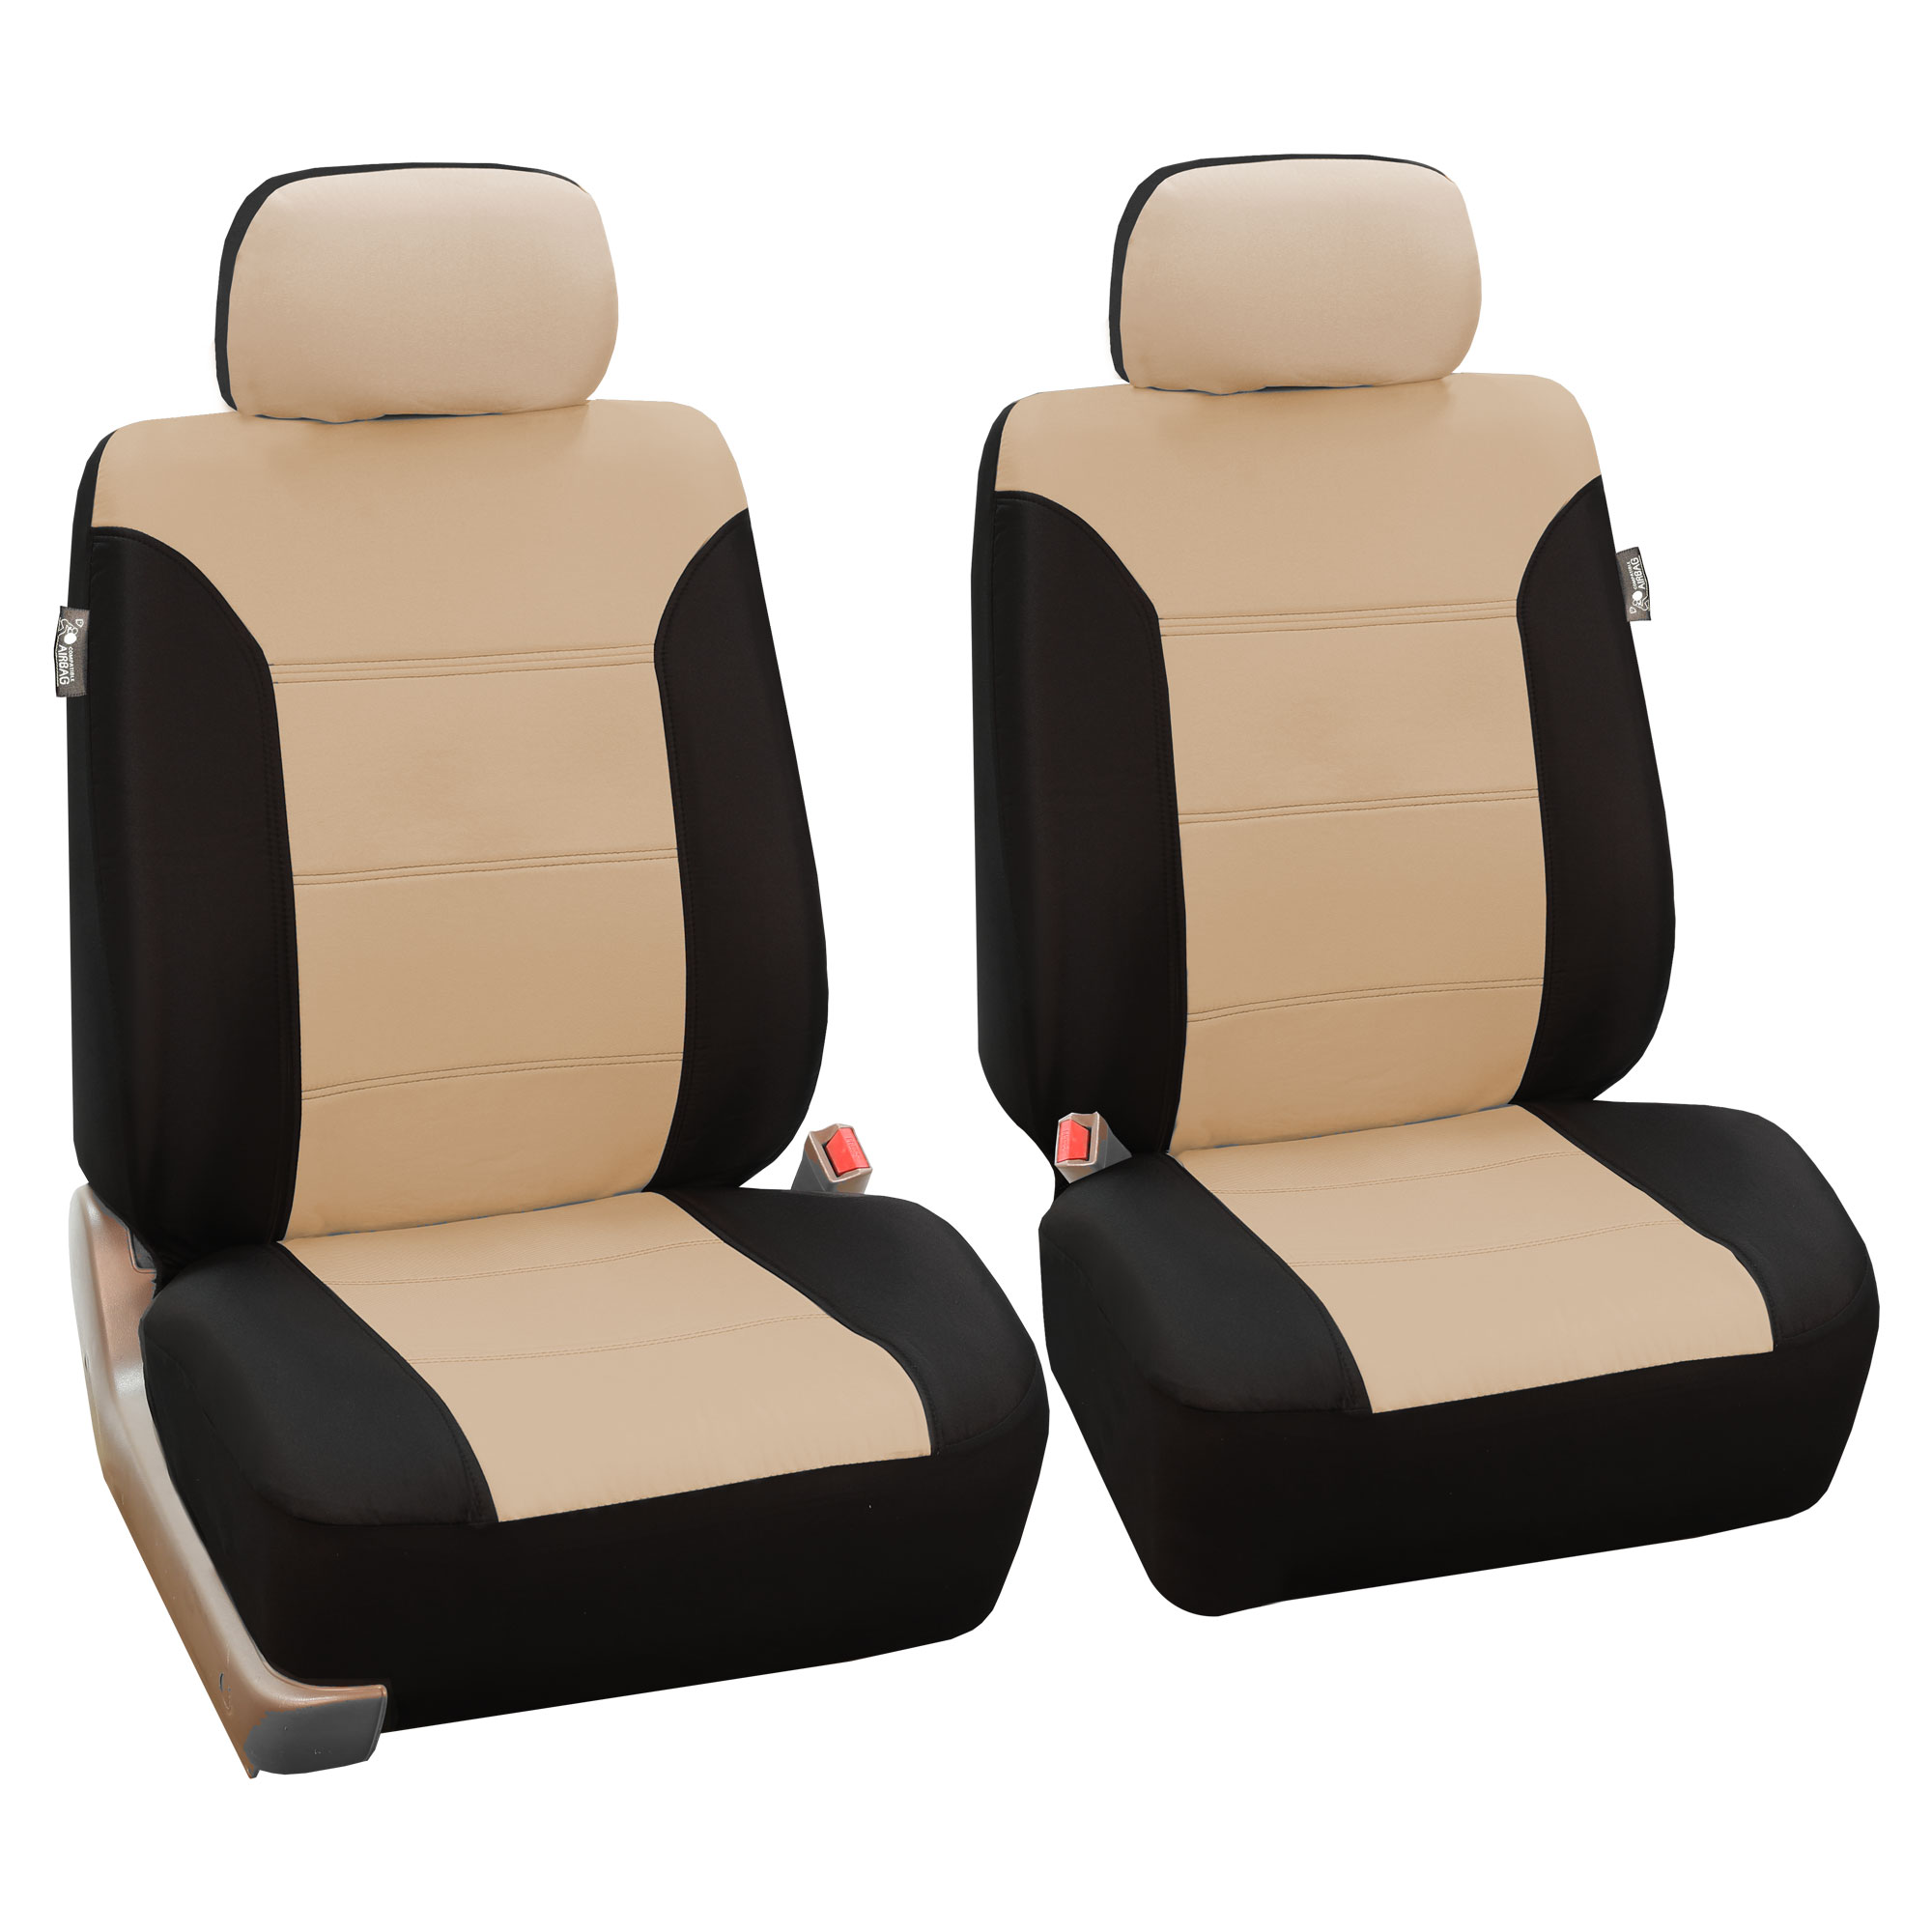 Beige Black Car Seat Covers Set For Auto W Floor Mat